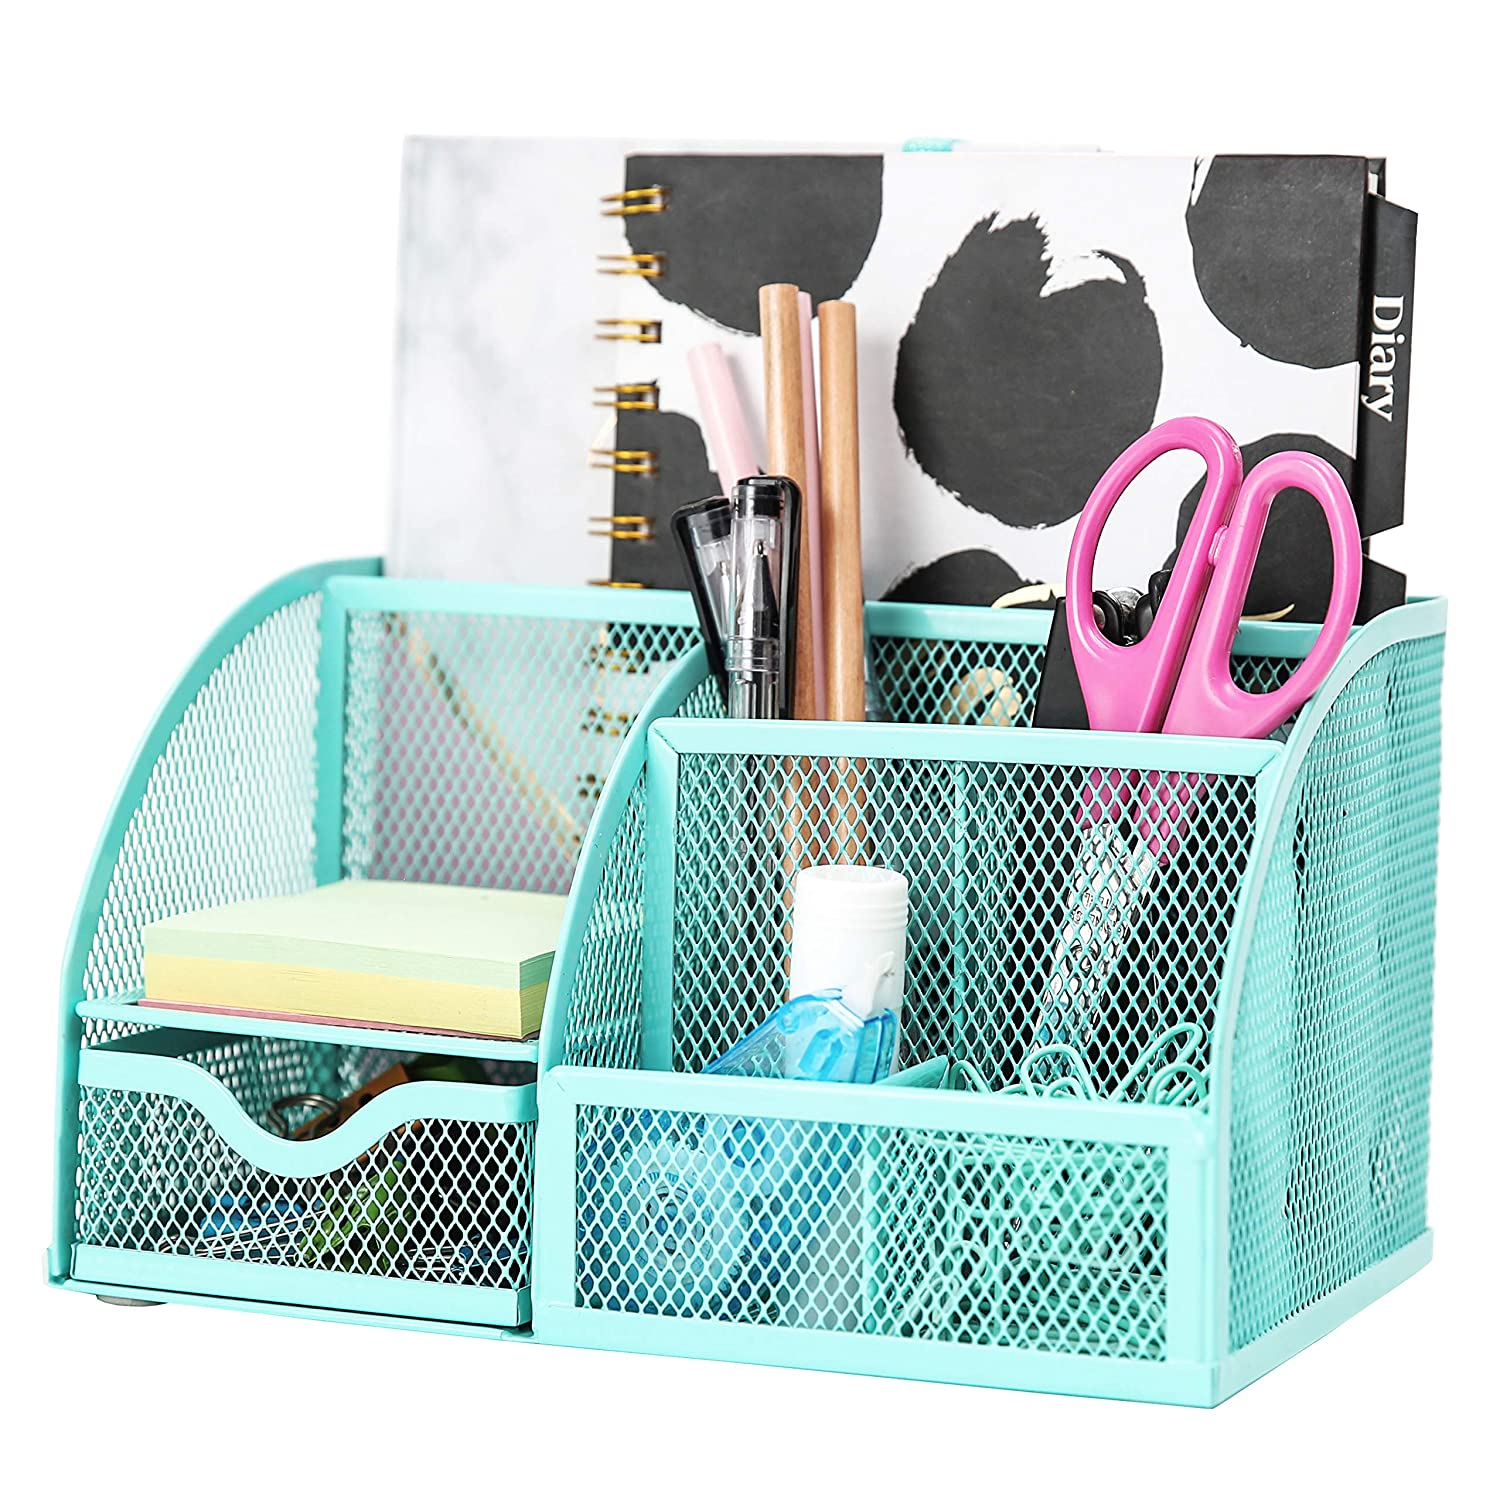 Exerz Mesh Desk Organizer Office with 6 Compartments + Drawer/Desk Tidy Candy/Pen Holder/Multifunctional Organizer EX348 Turquoise/Teal Color